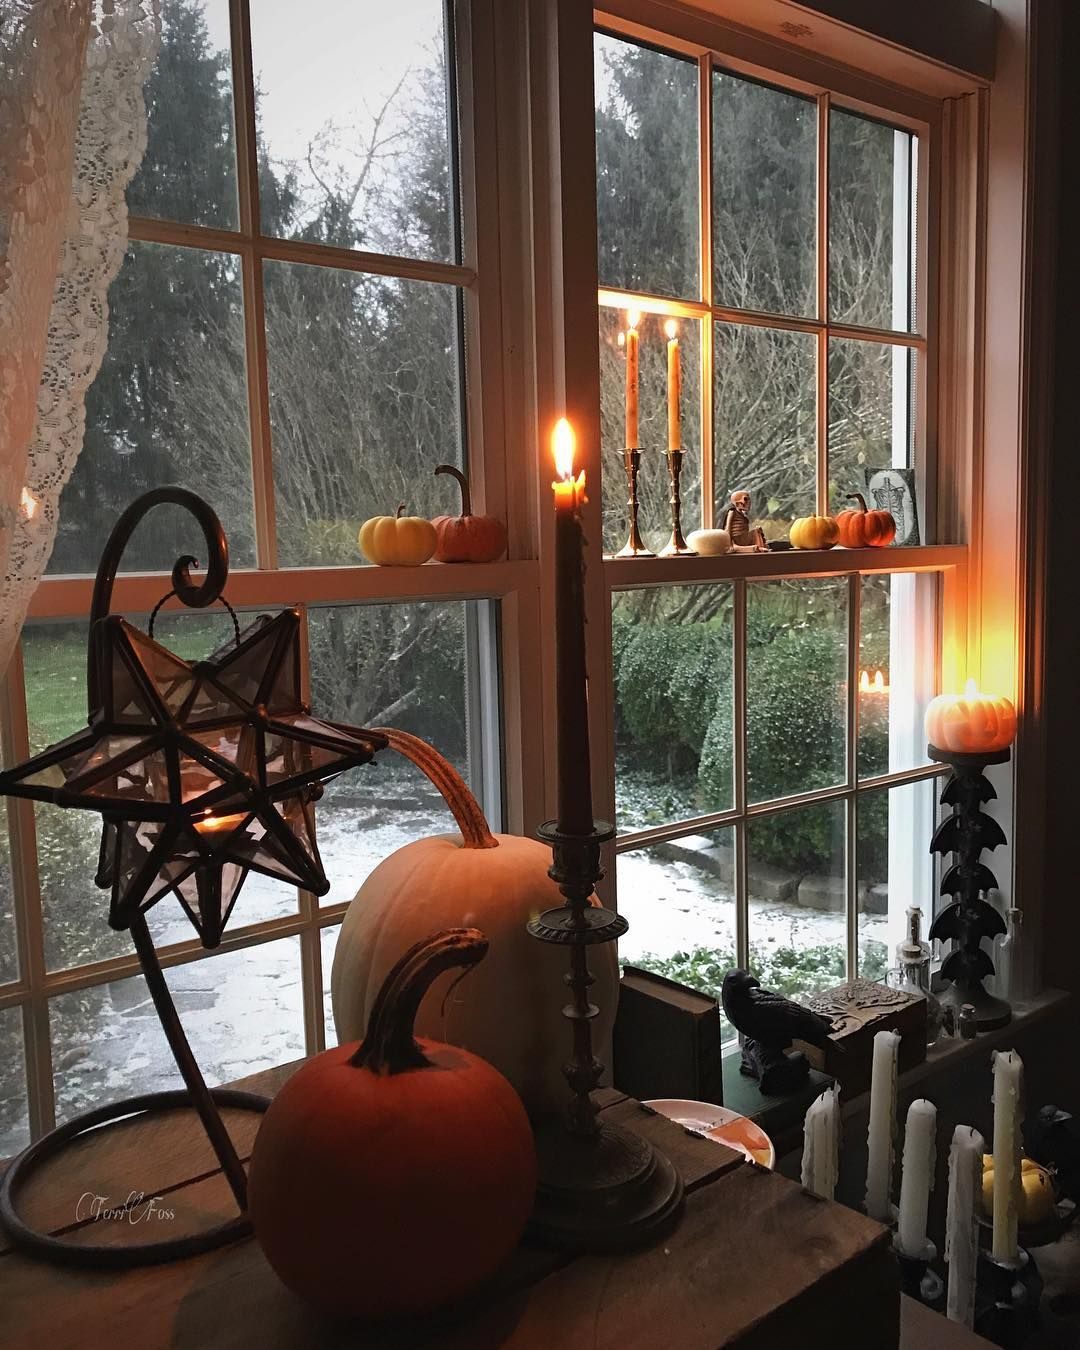 Be Safe Wherever You Are Terrifoss Winter Snow Instagood Instagram Witchesofinstagram Autumn Halloween Loveandlight Me Autumn Cozy White Pumpkins Witch Decor